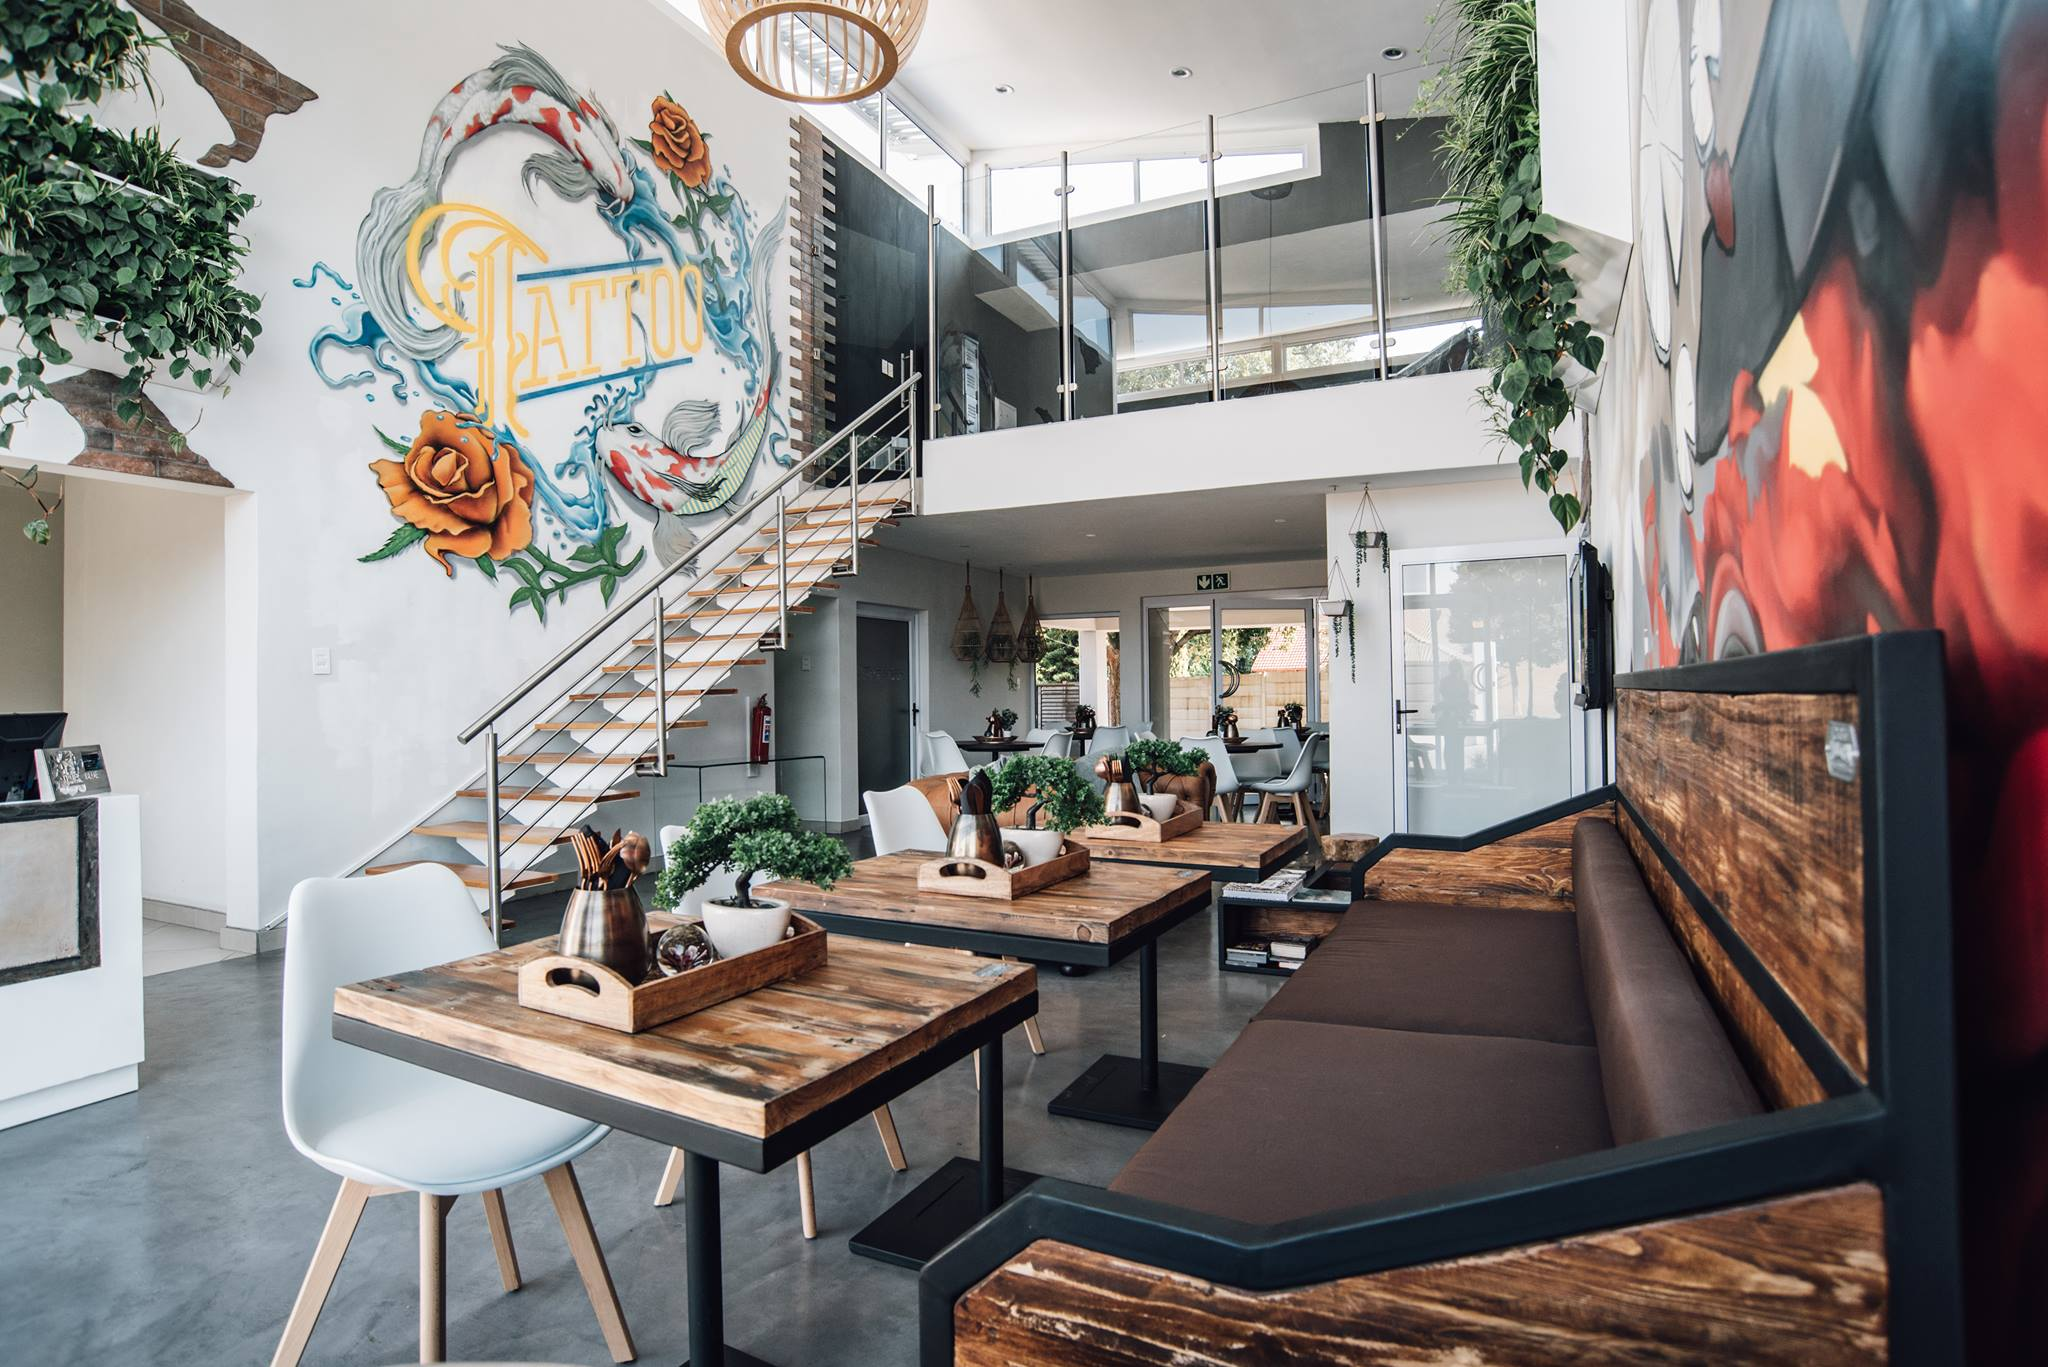 Street Art Mural painting at T-Mobile offices, mural artists for hire, street artists in netherlands